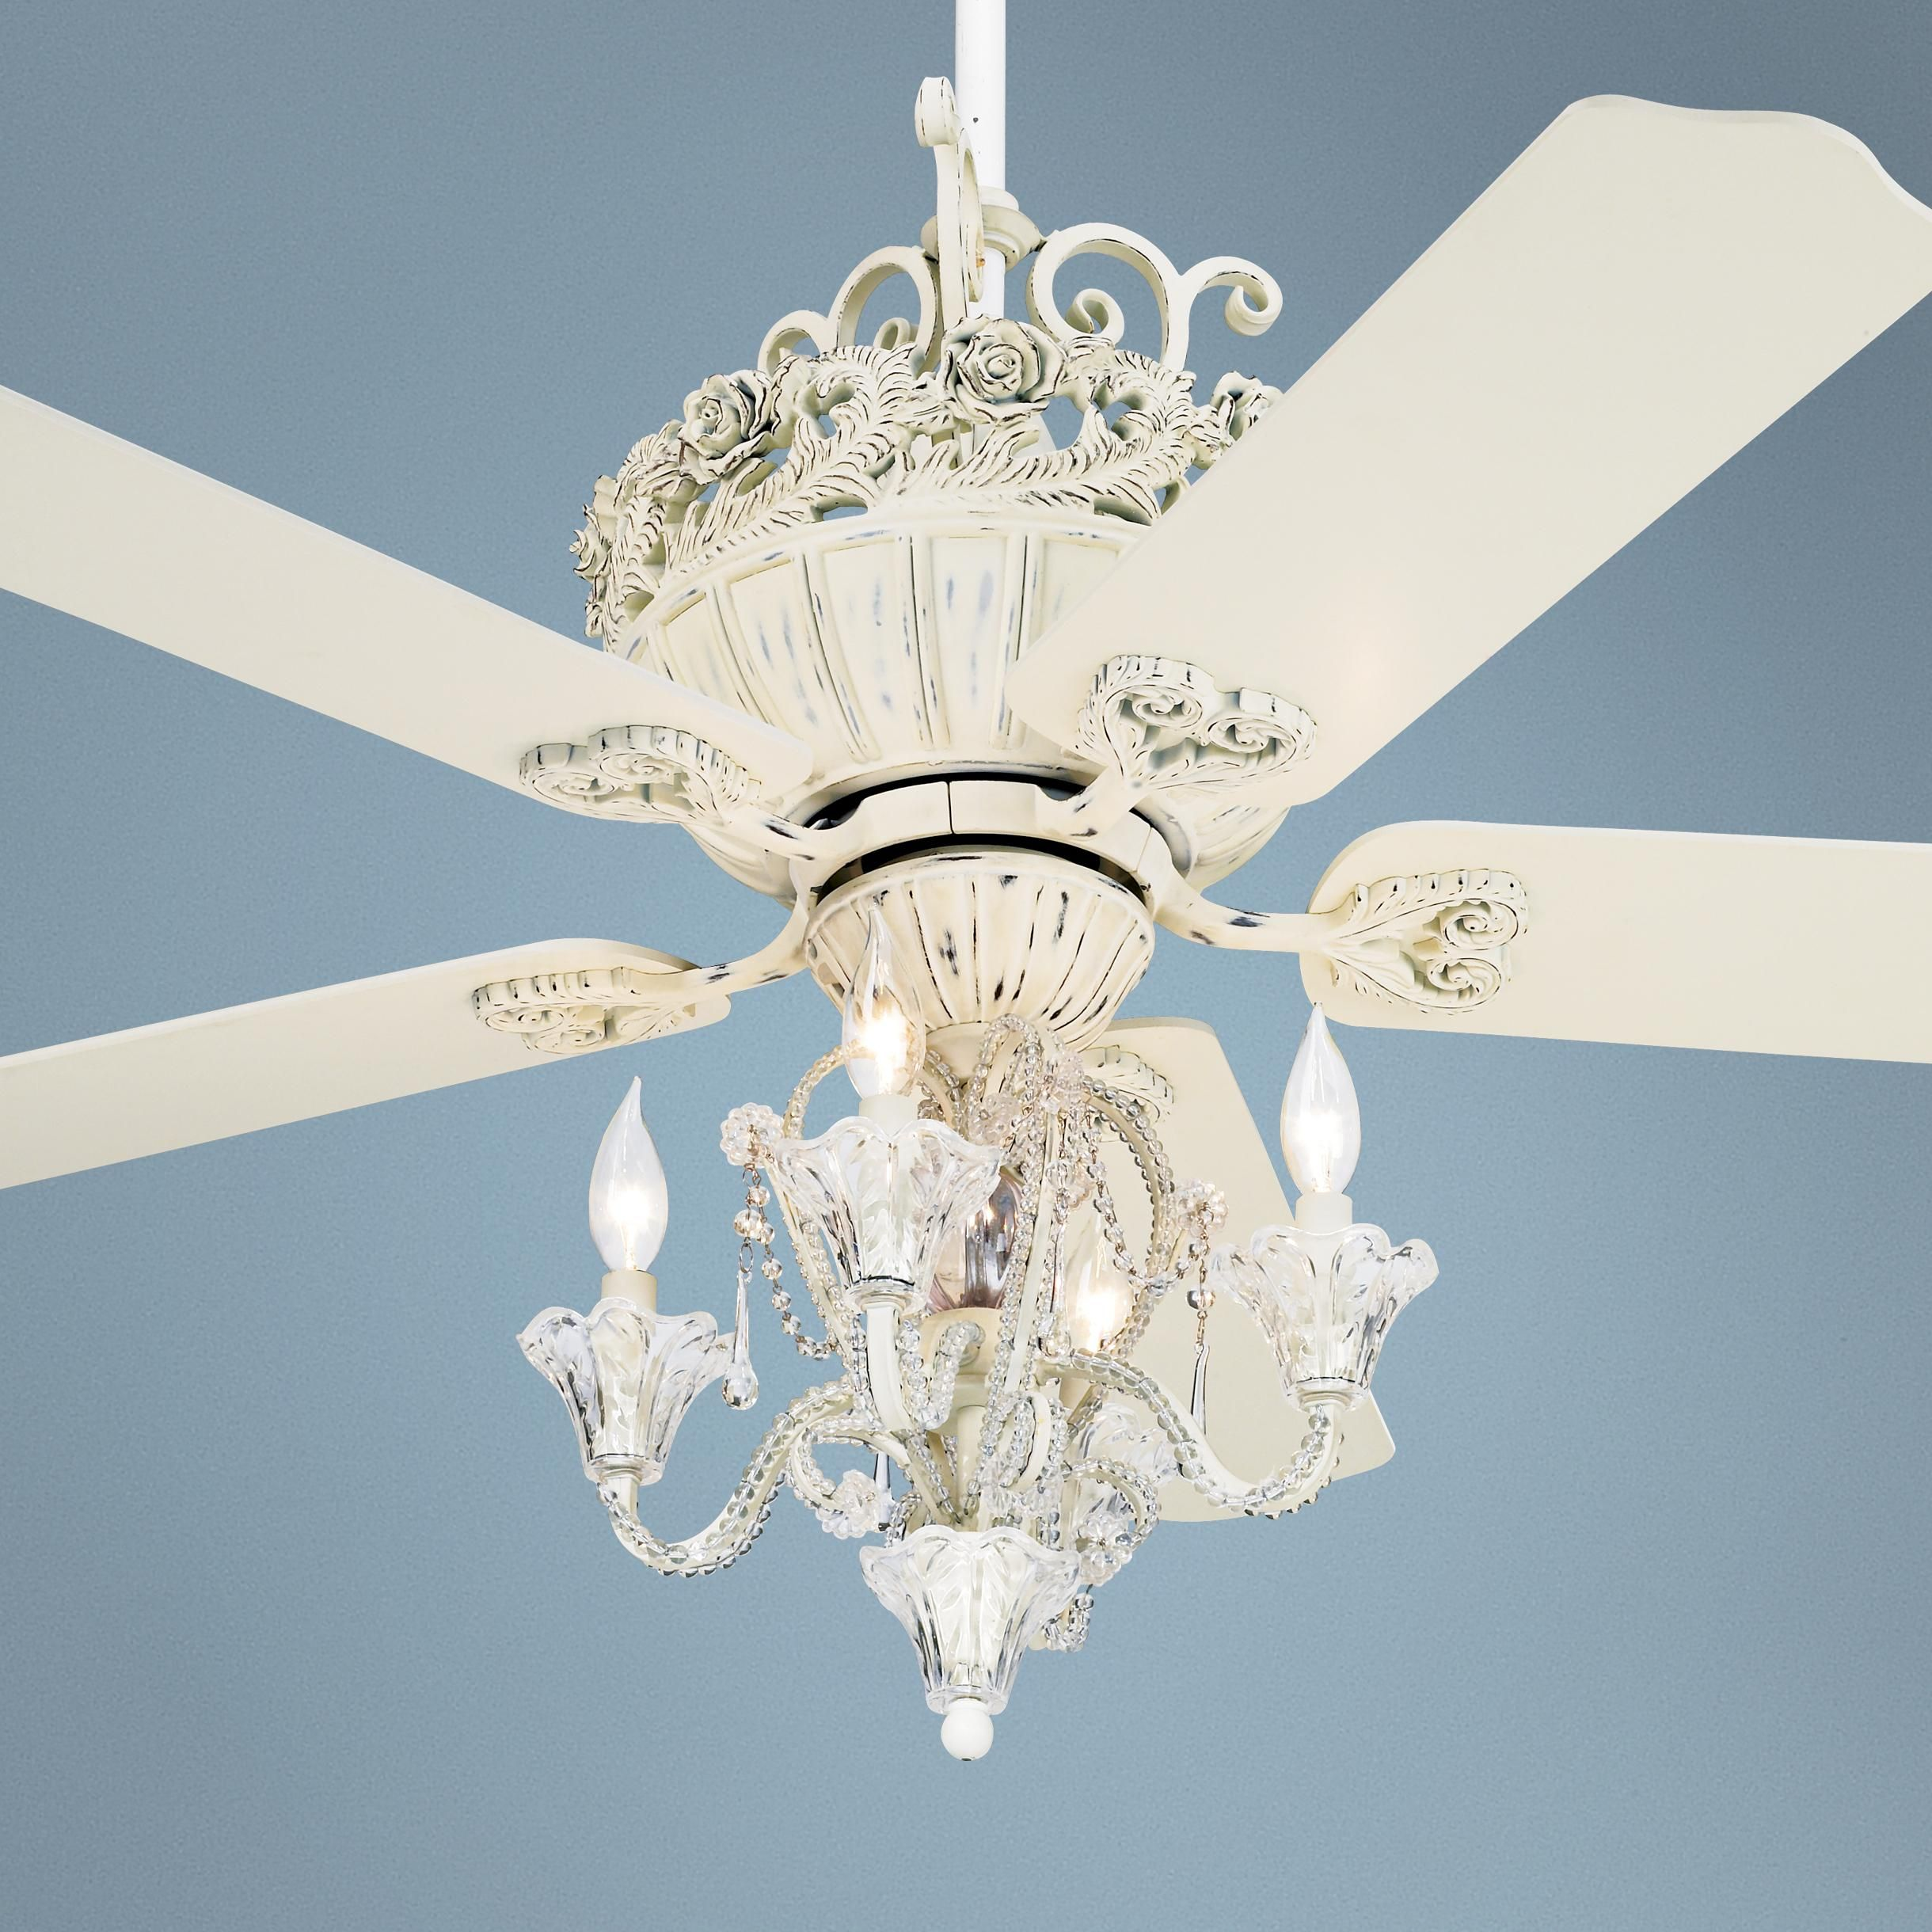 52 Casa Chic Antique White Ceiling Fan With 4 Light Kit White